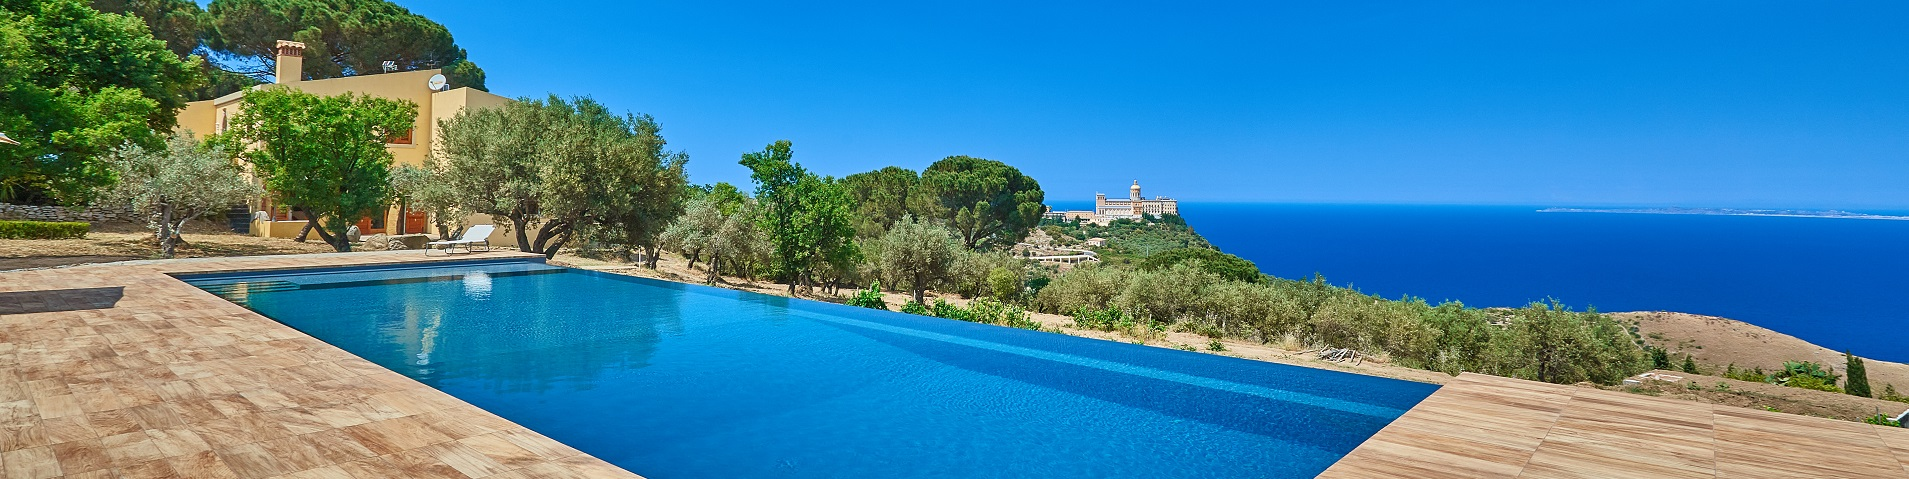 villas in sicily | holiday and luxury sicily villas to rent